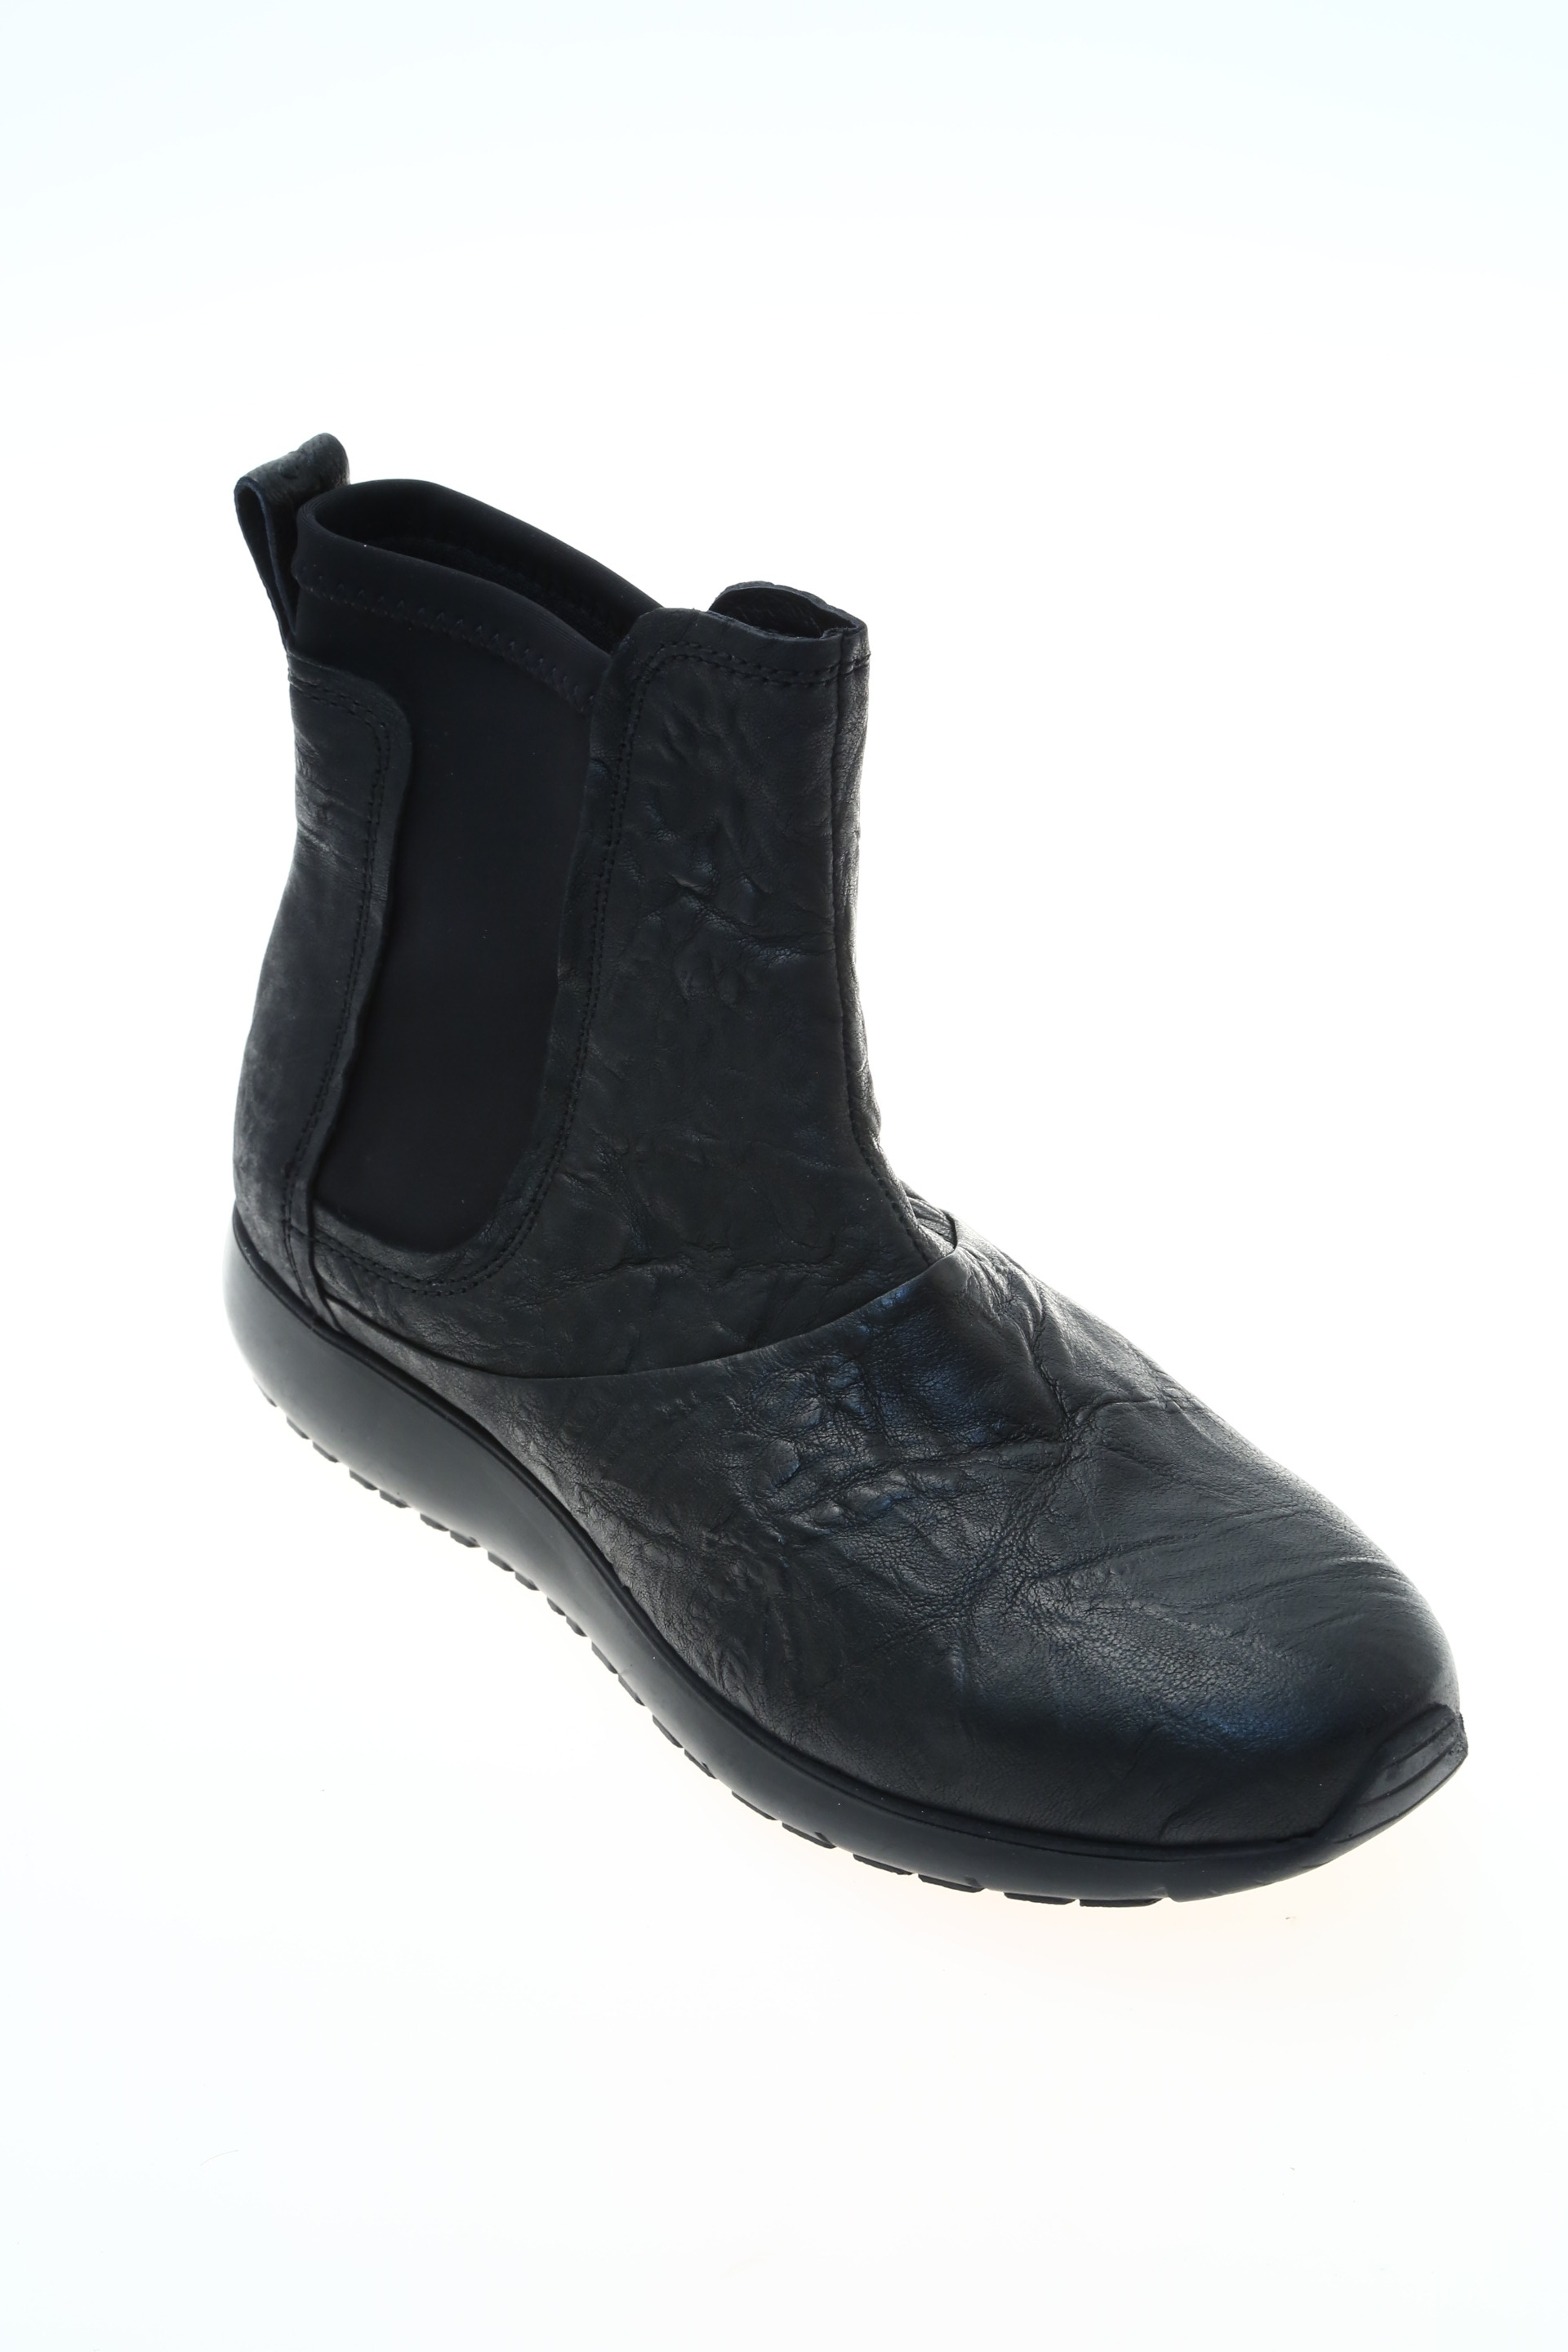 Andia Fora Shoes Online